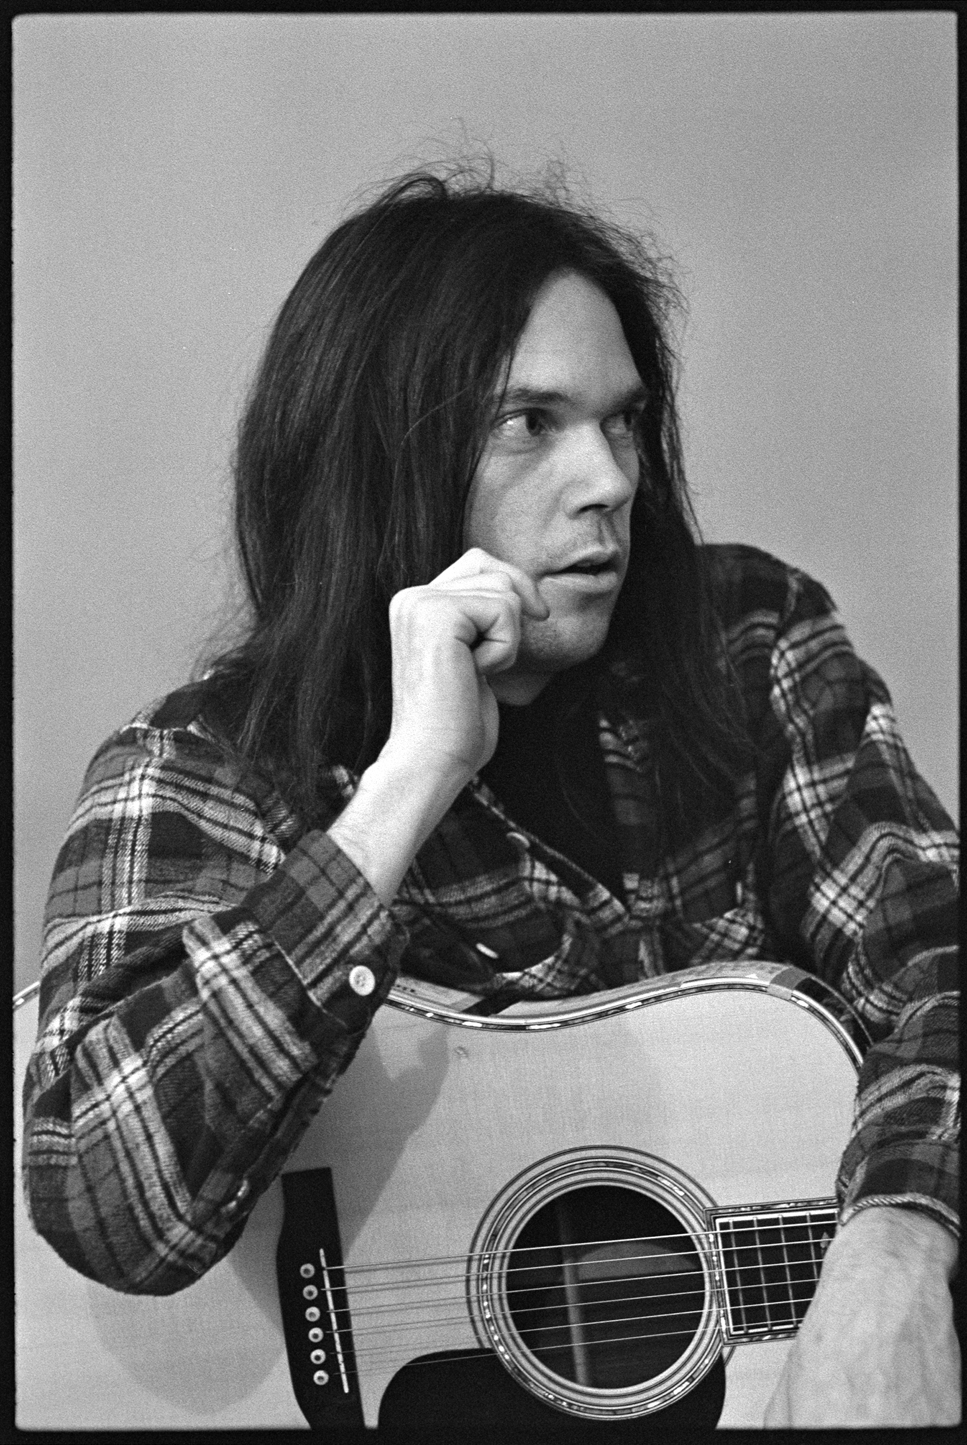 The Batcave: Neil Young, After the Goldrush (1970)